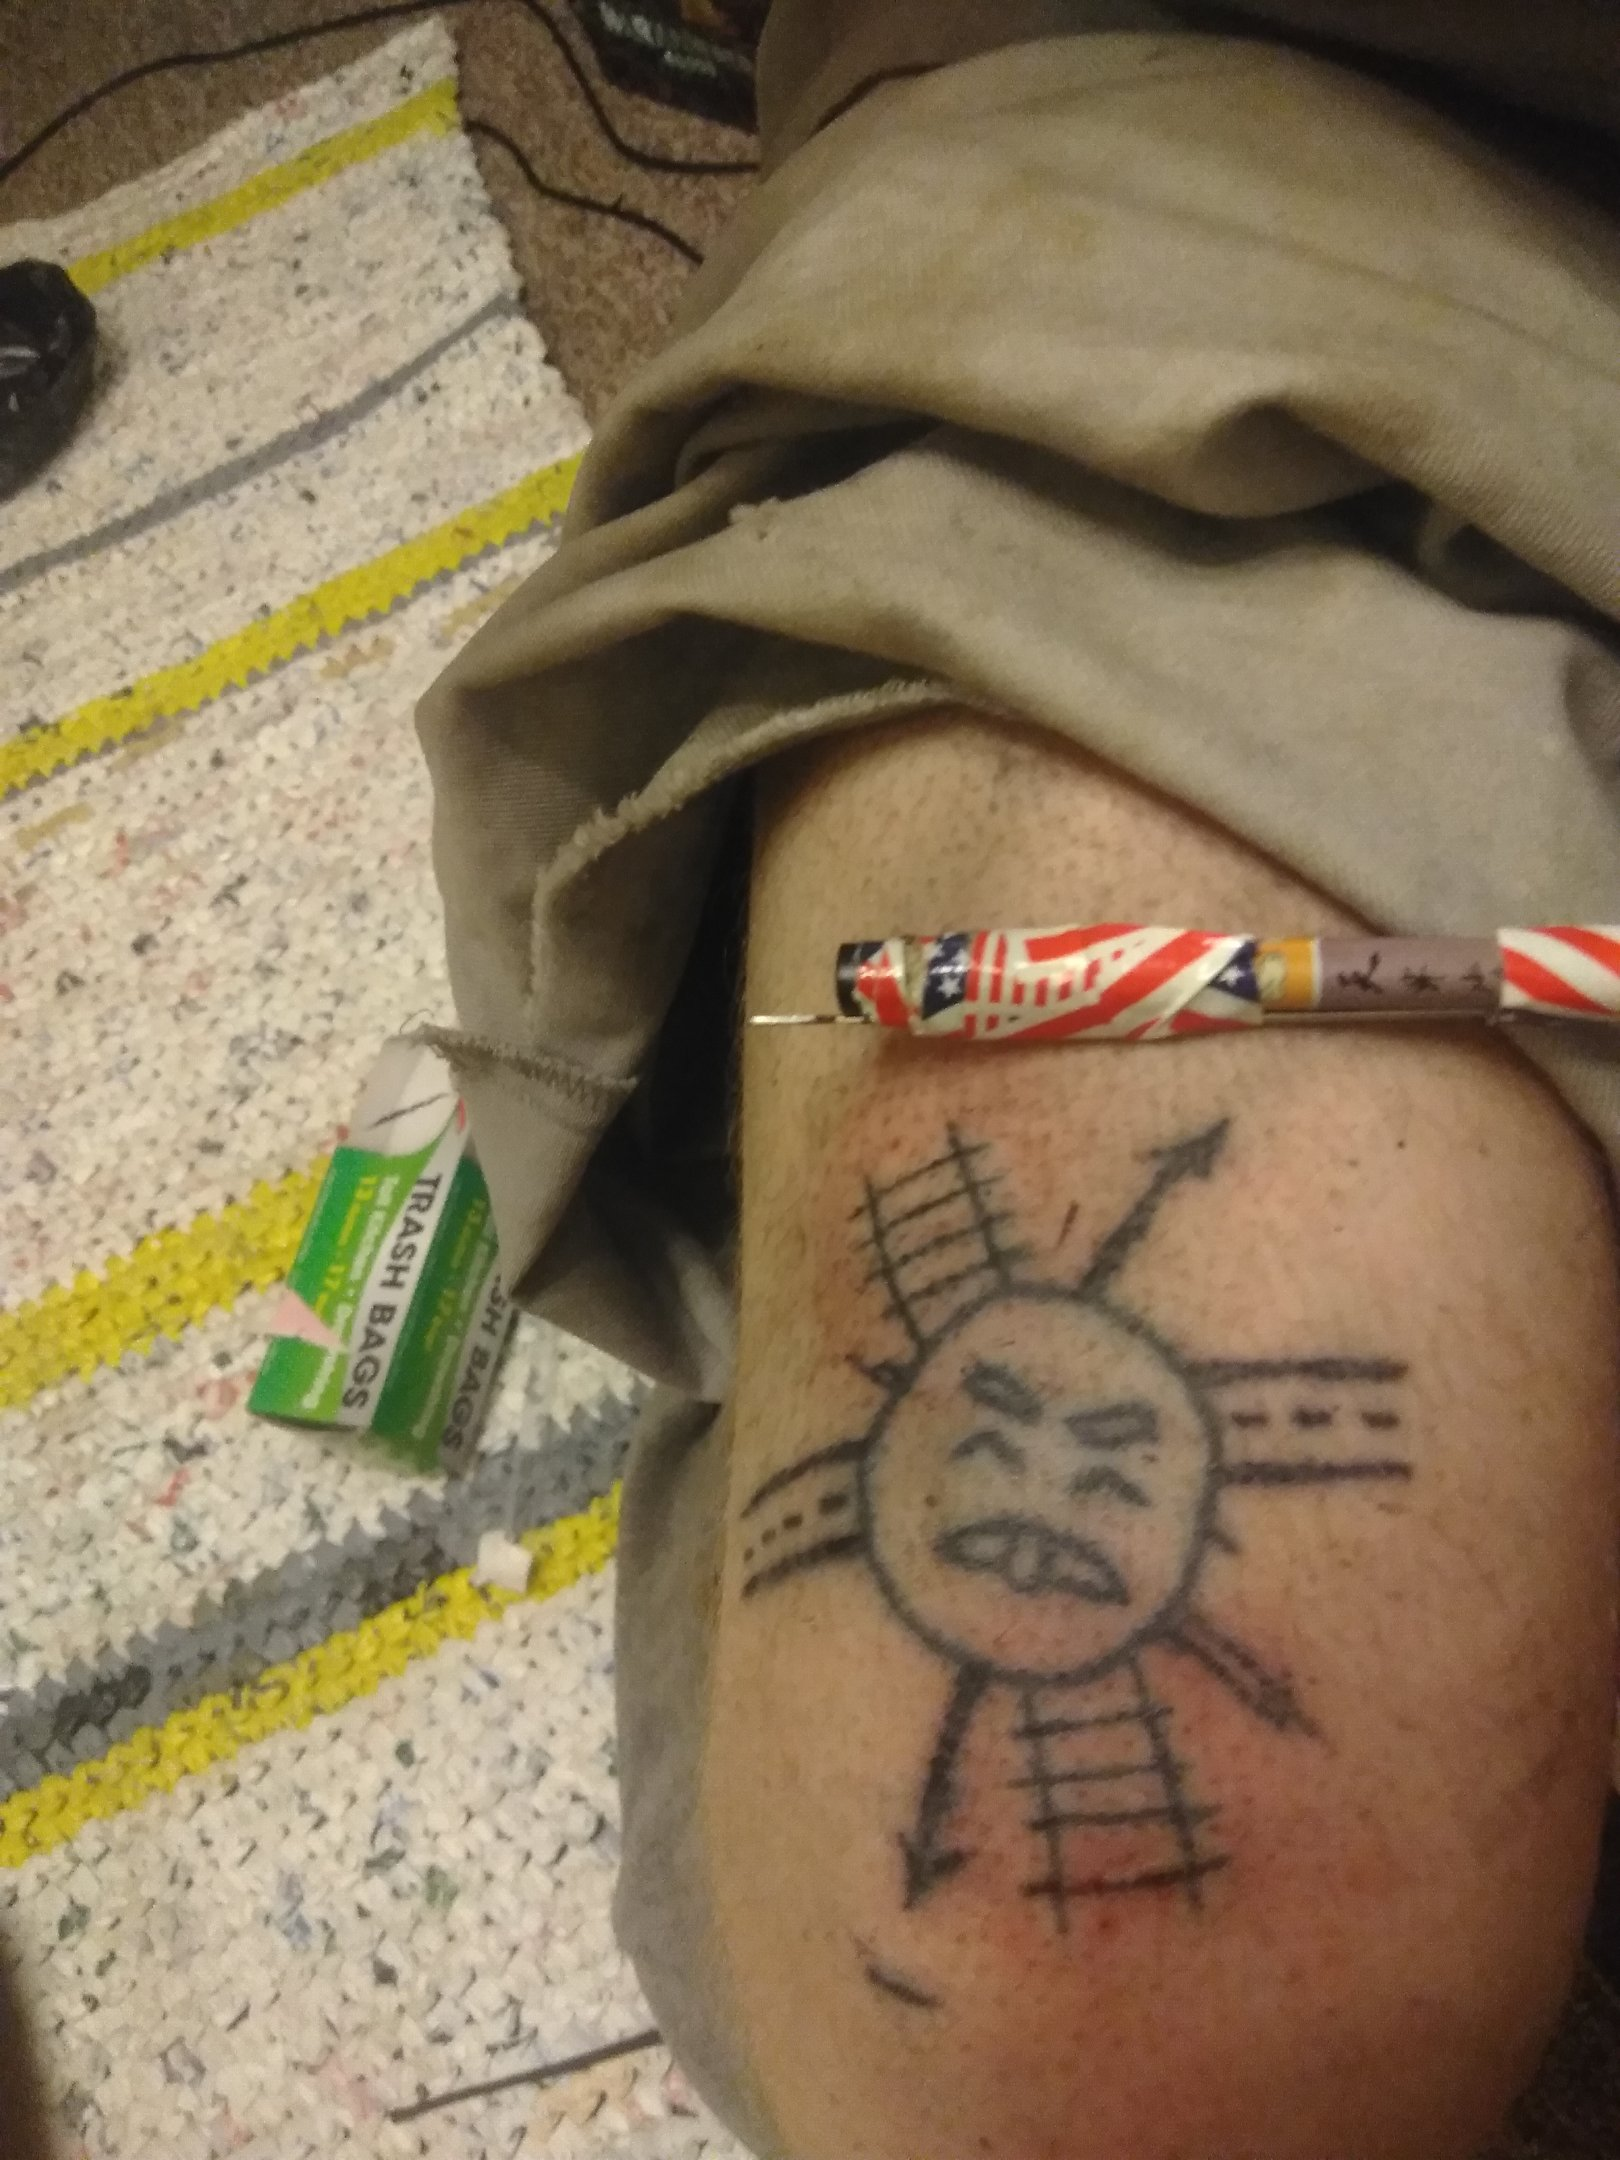 img_20180429_211538-jpg.49649_Stick-n-pokes you've given?!_Art & Music_Squat the Planet_4:10 PM